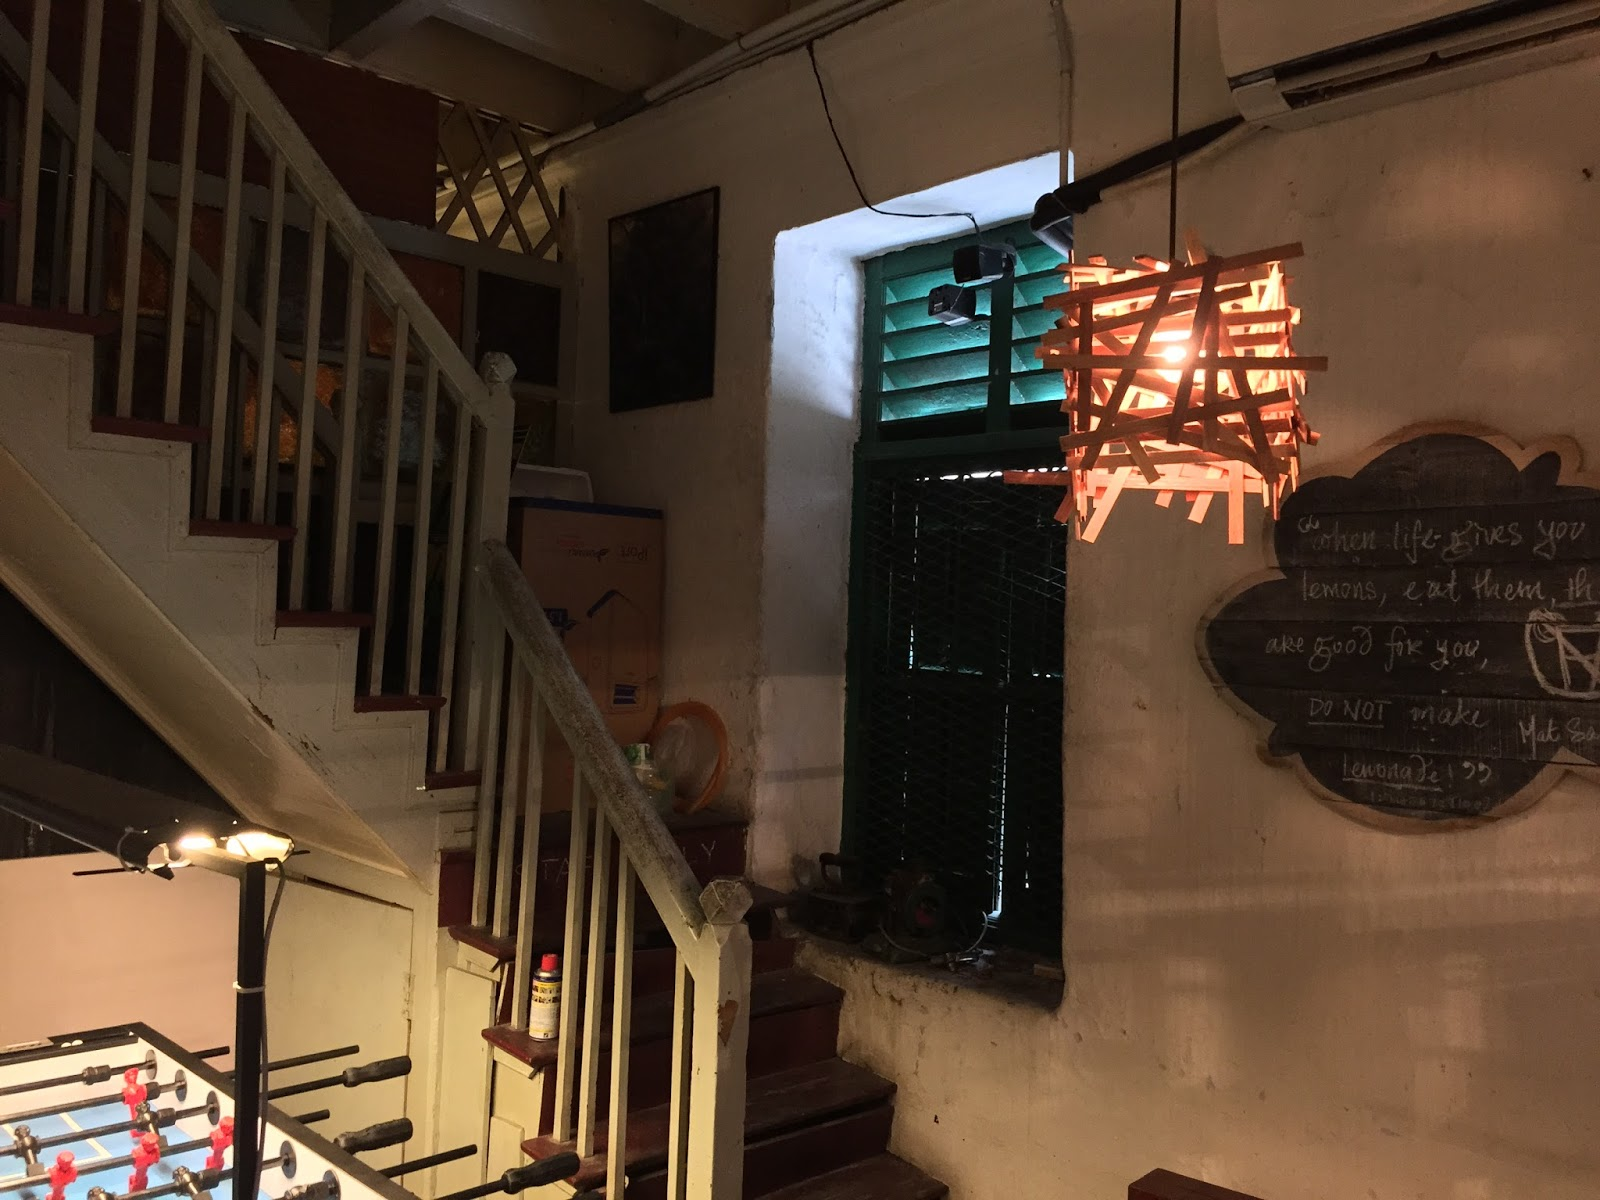 Penang Cafes - The Mugshot Cafe Interior